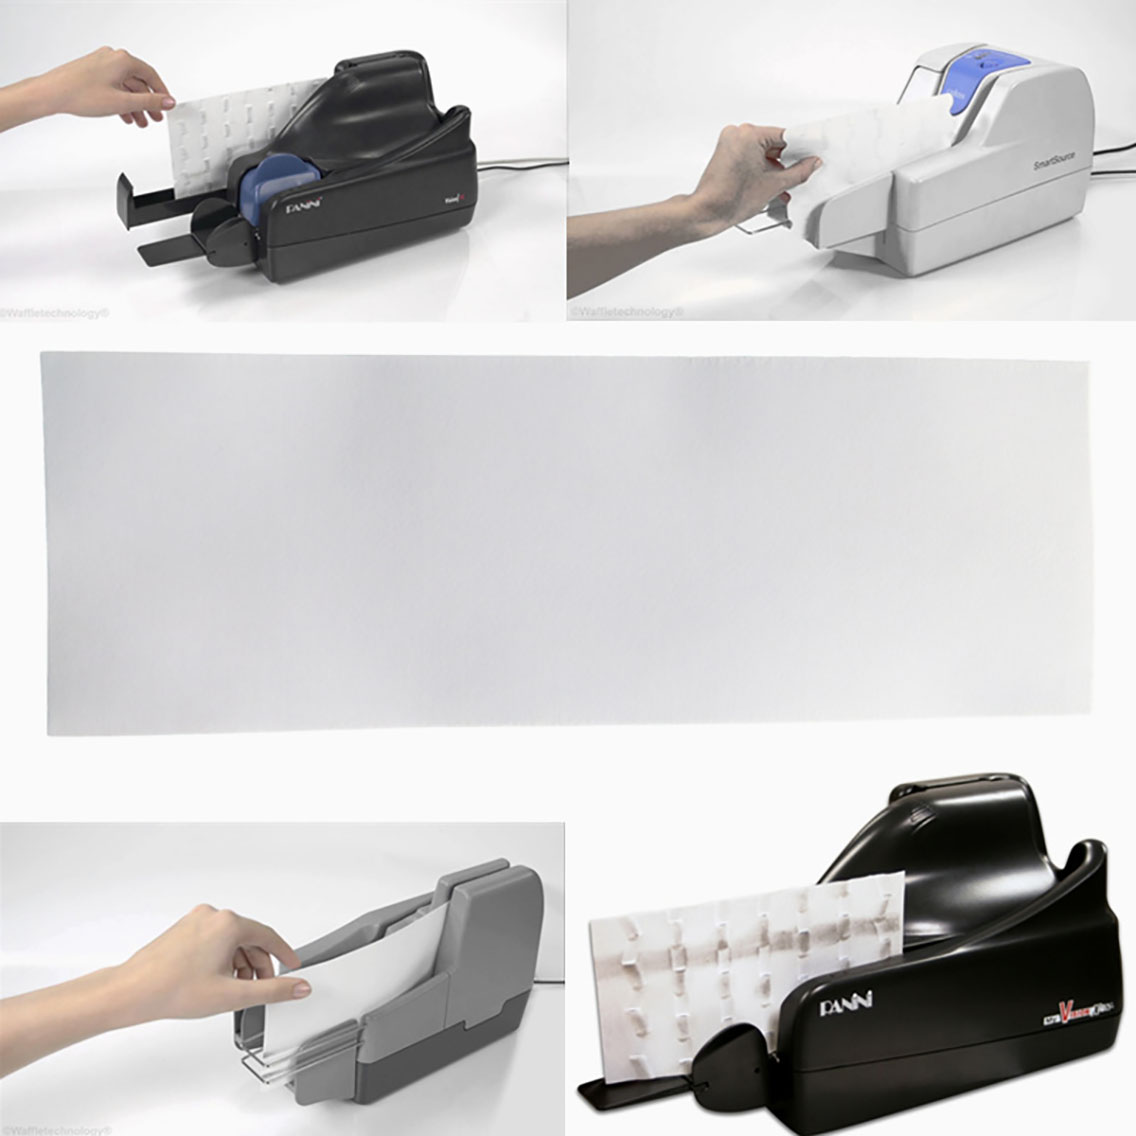 Cleanmo quick check scanner cleaning cards manufacturer for scanner cleaning-6